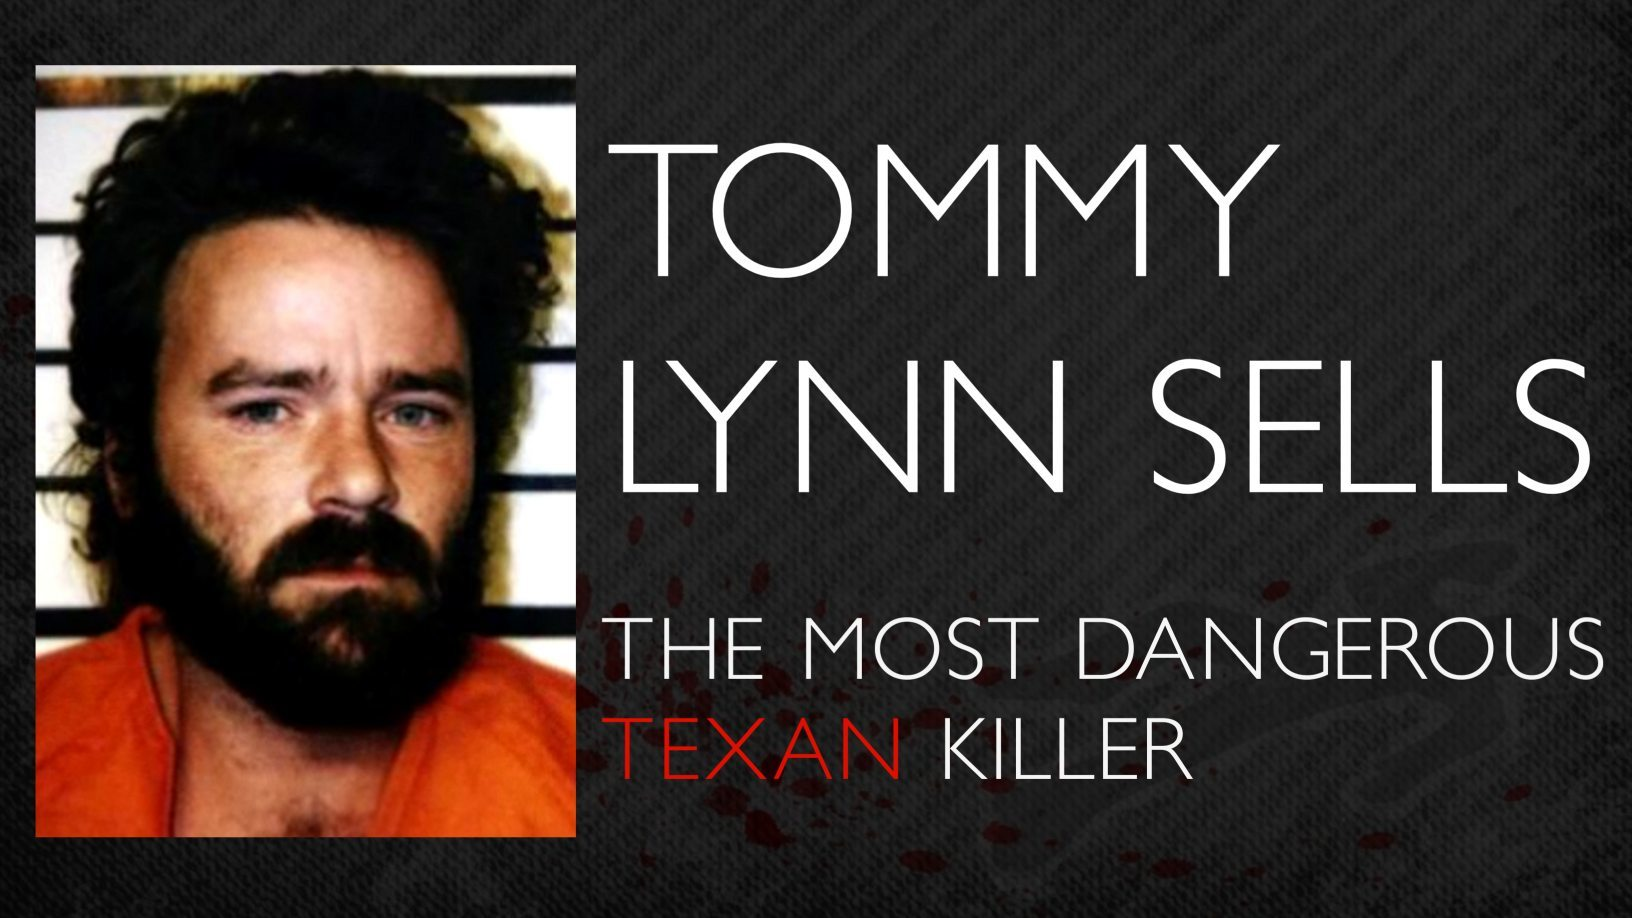 27 most evil and notorious serial killers the world has ever seen 20